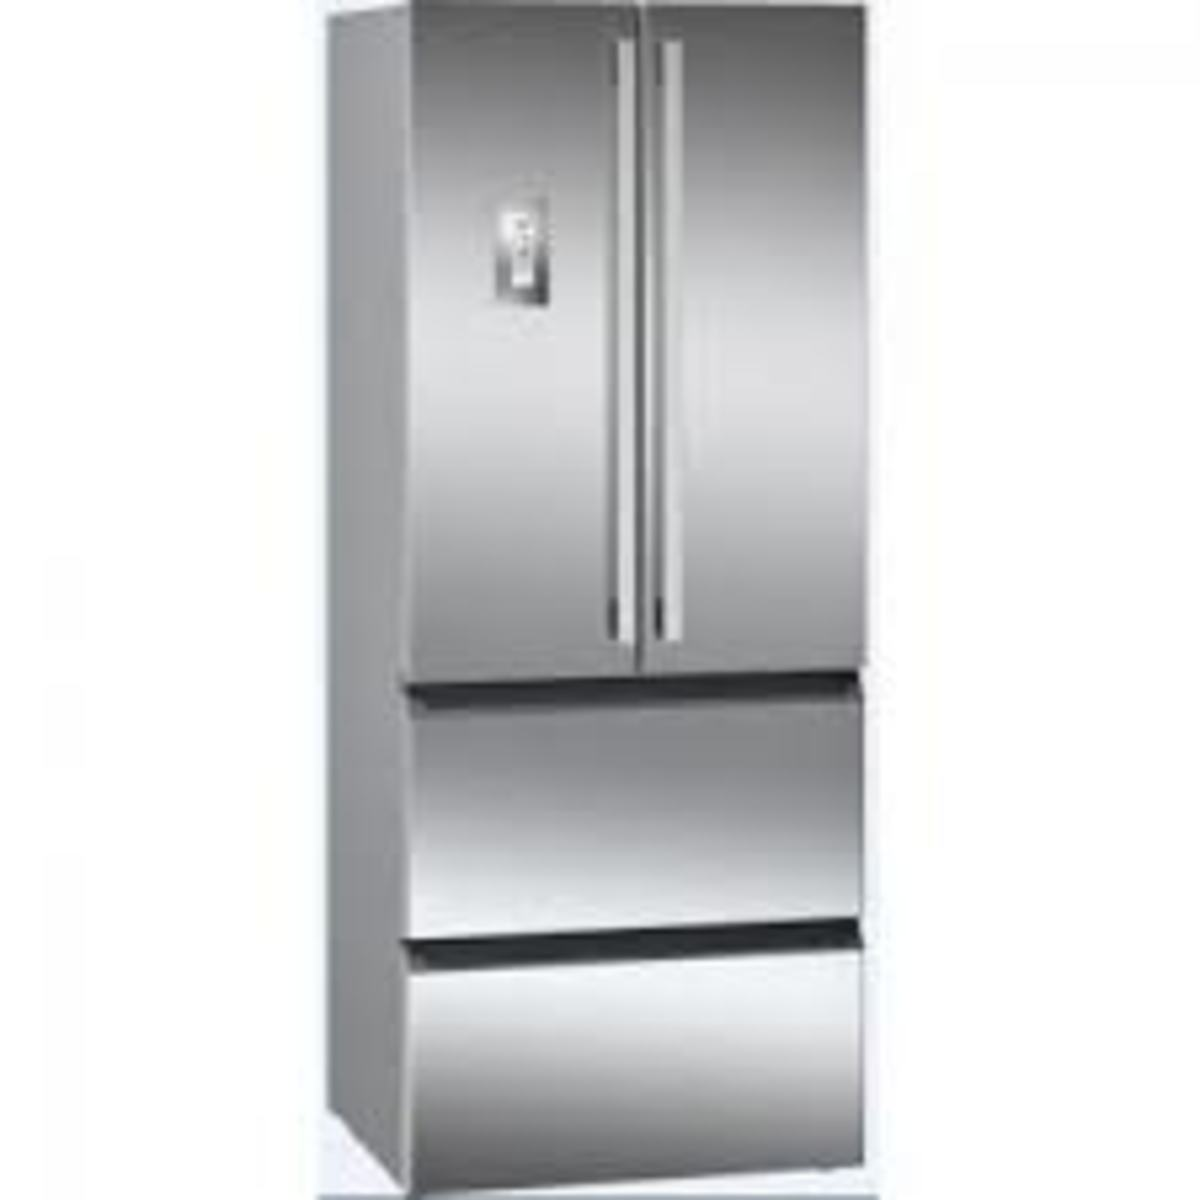 KM40FAI20 492Litres Side By Side Refrigerator